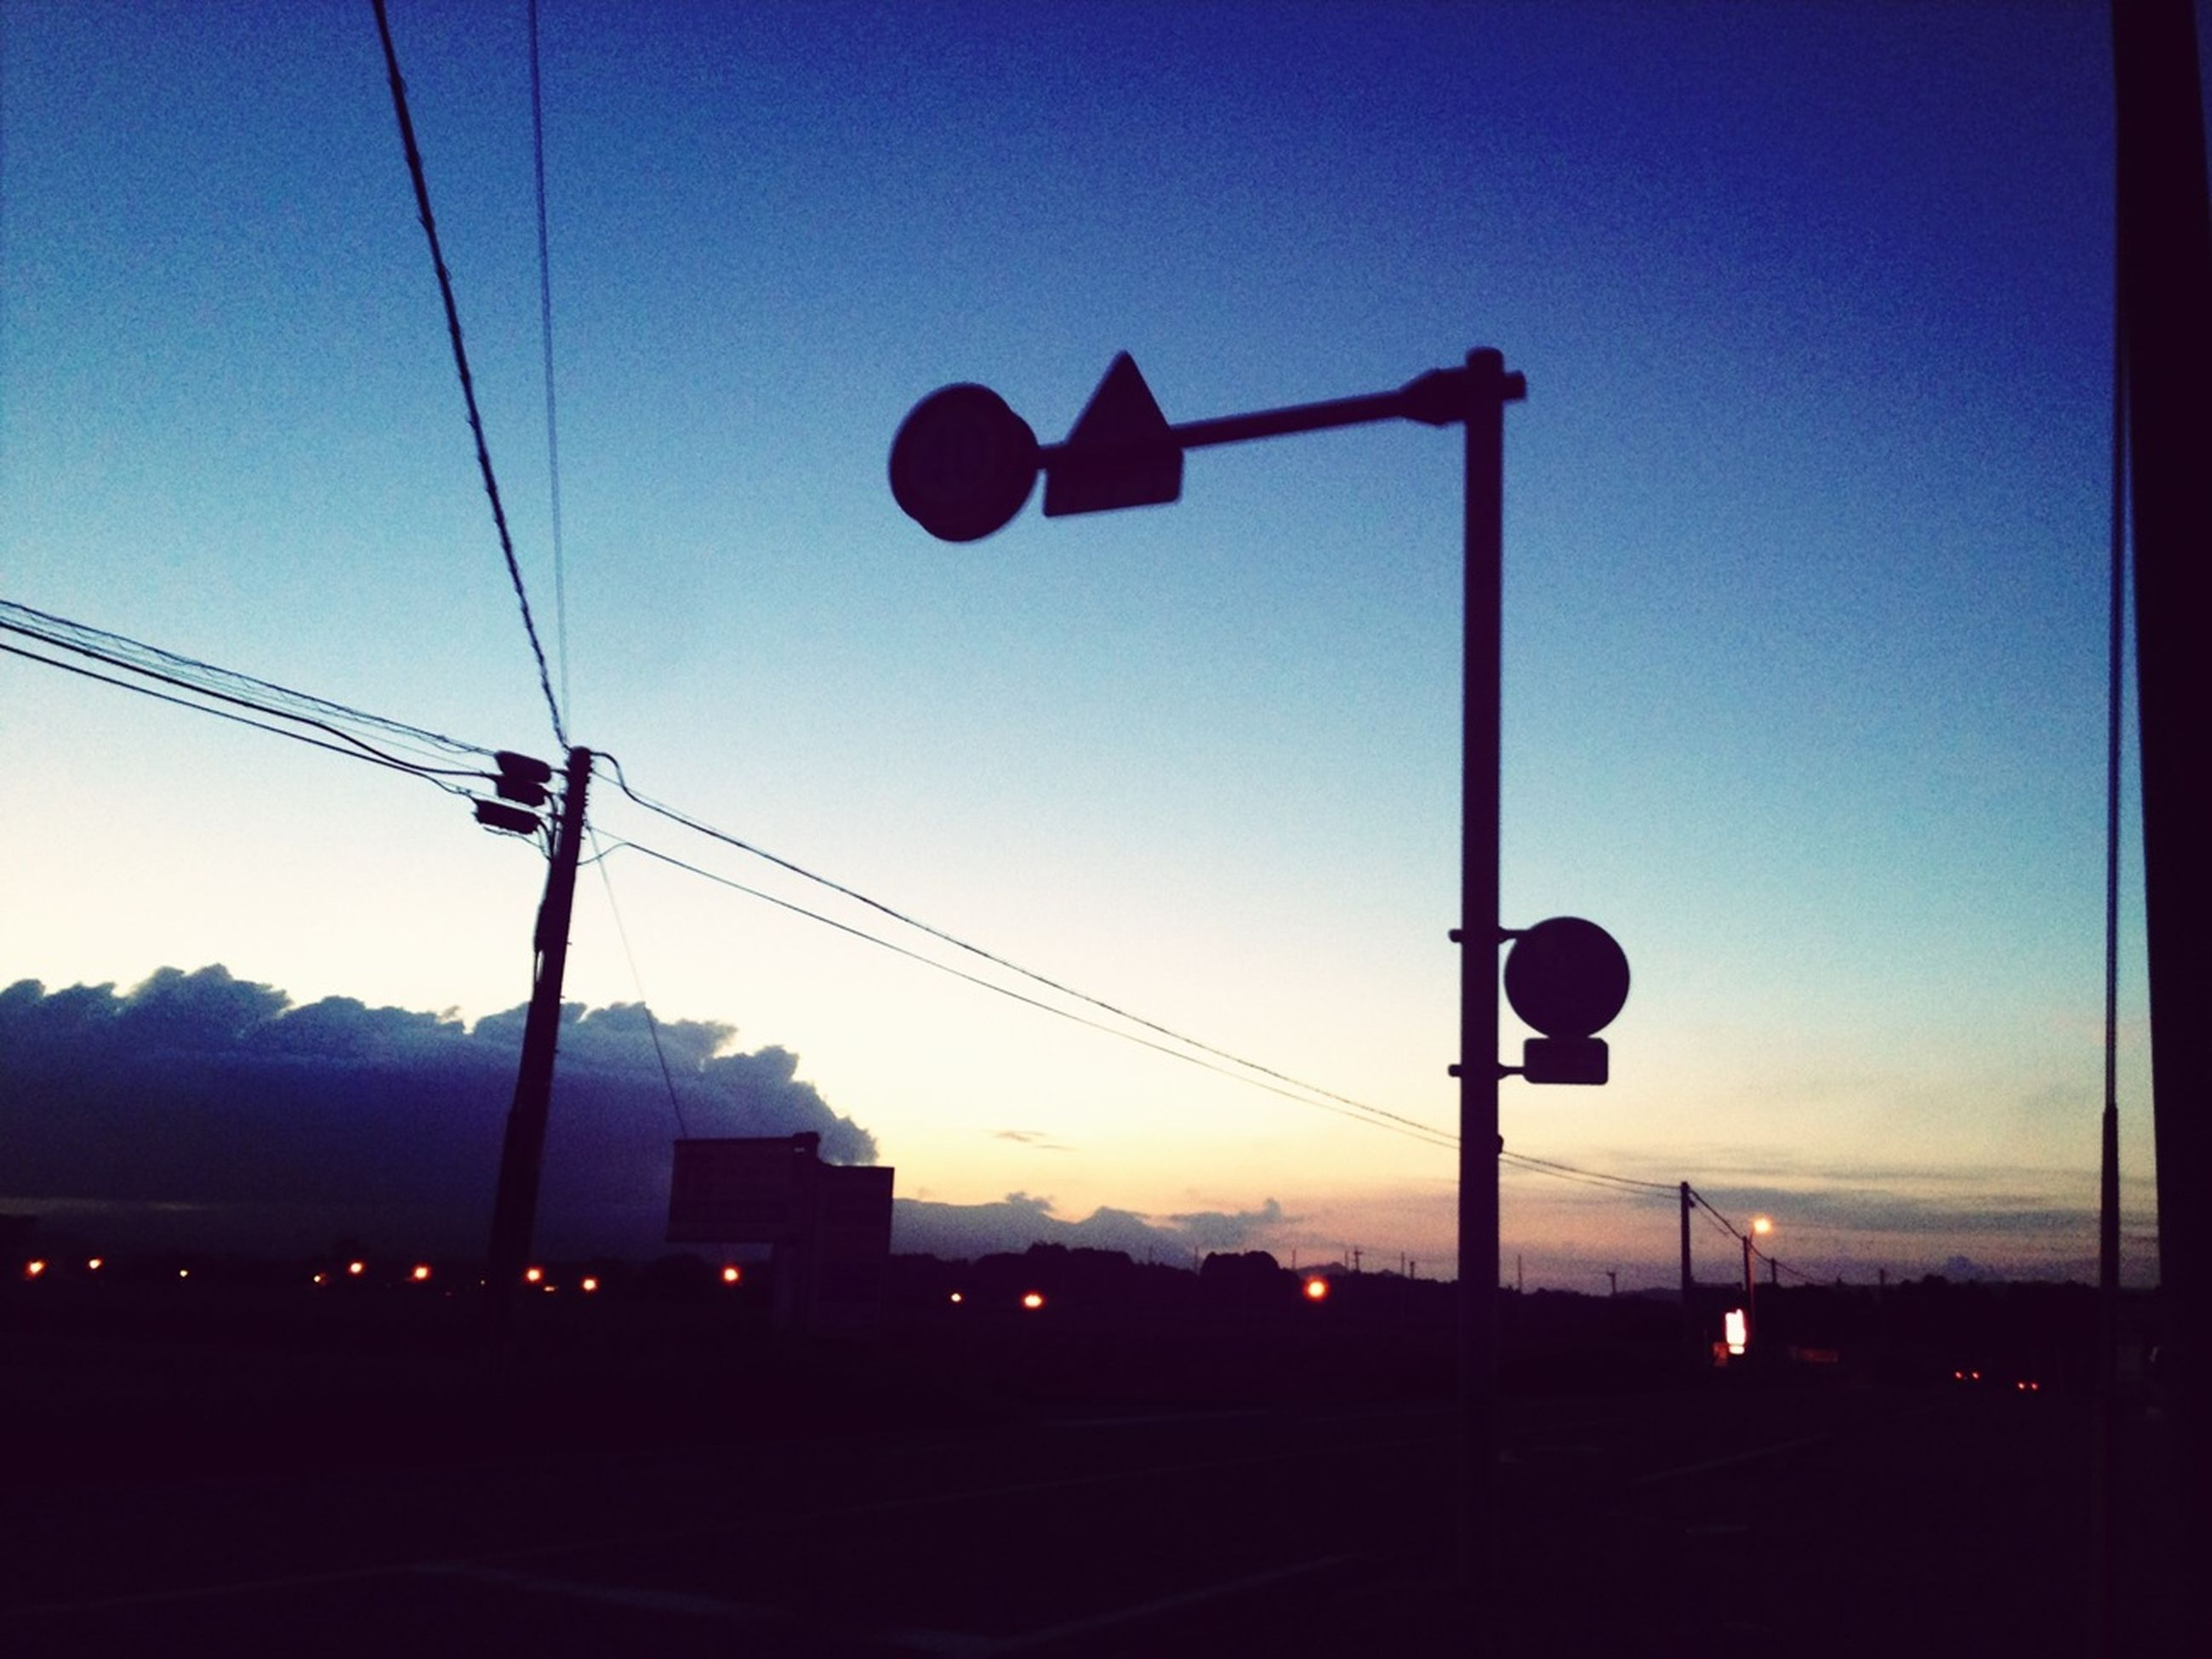 street light, sunset, silhouette, sky, communication, lighting equipment, road sign, power line, electricity, guidance, dusk, cable, road, electricity pylon, low angle view, pole, illuminated, street, building exterior, transportation